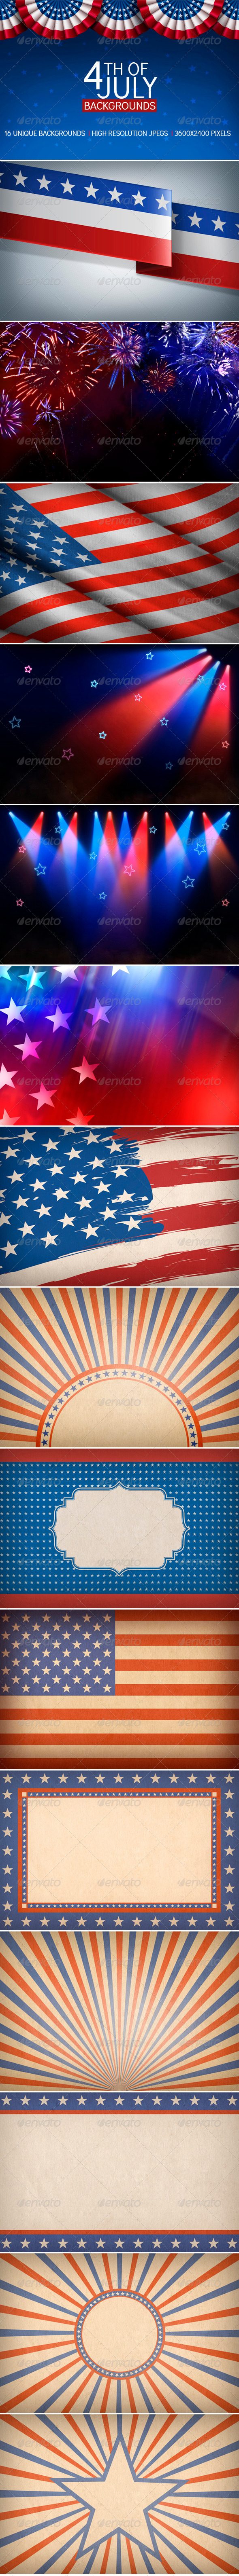 4th of July Backgrounds - Miscellaneous Backgrounds